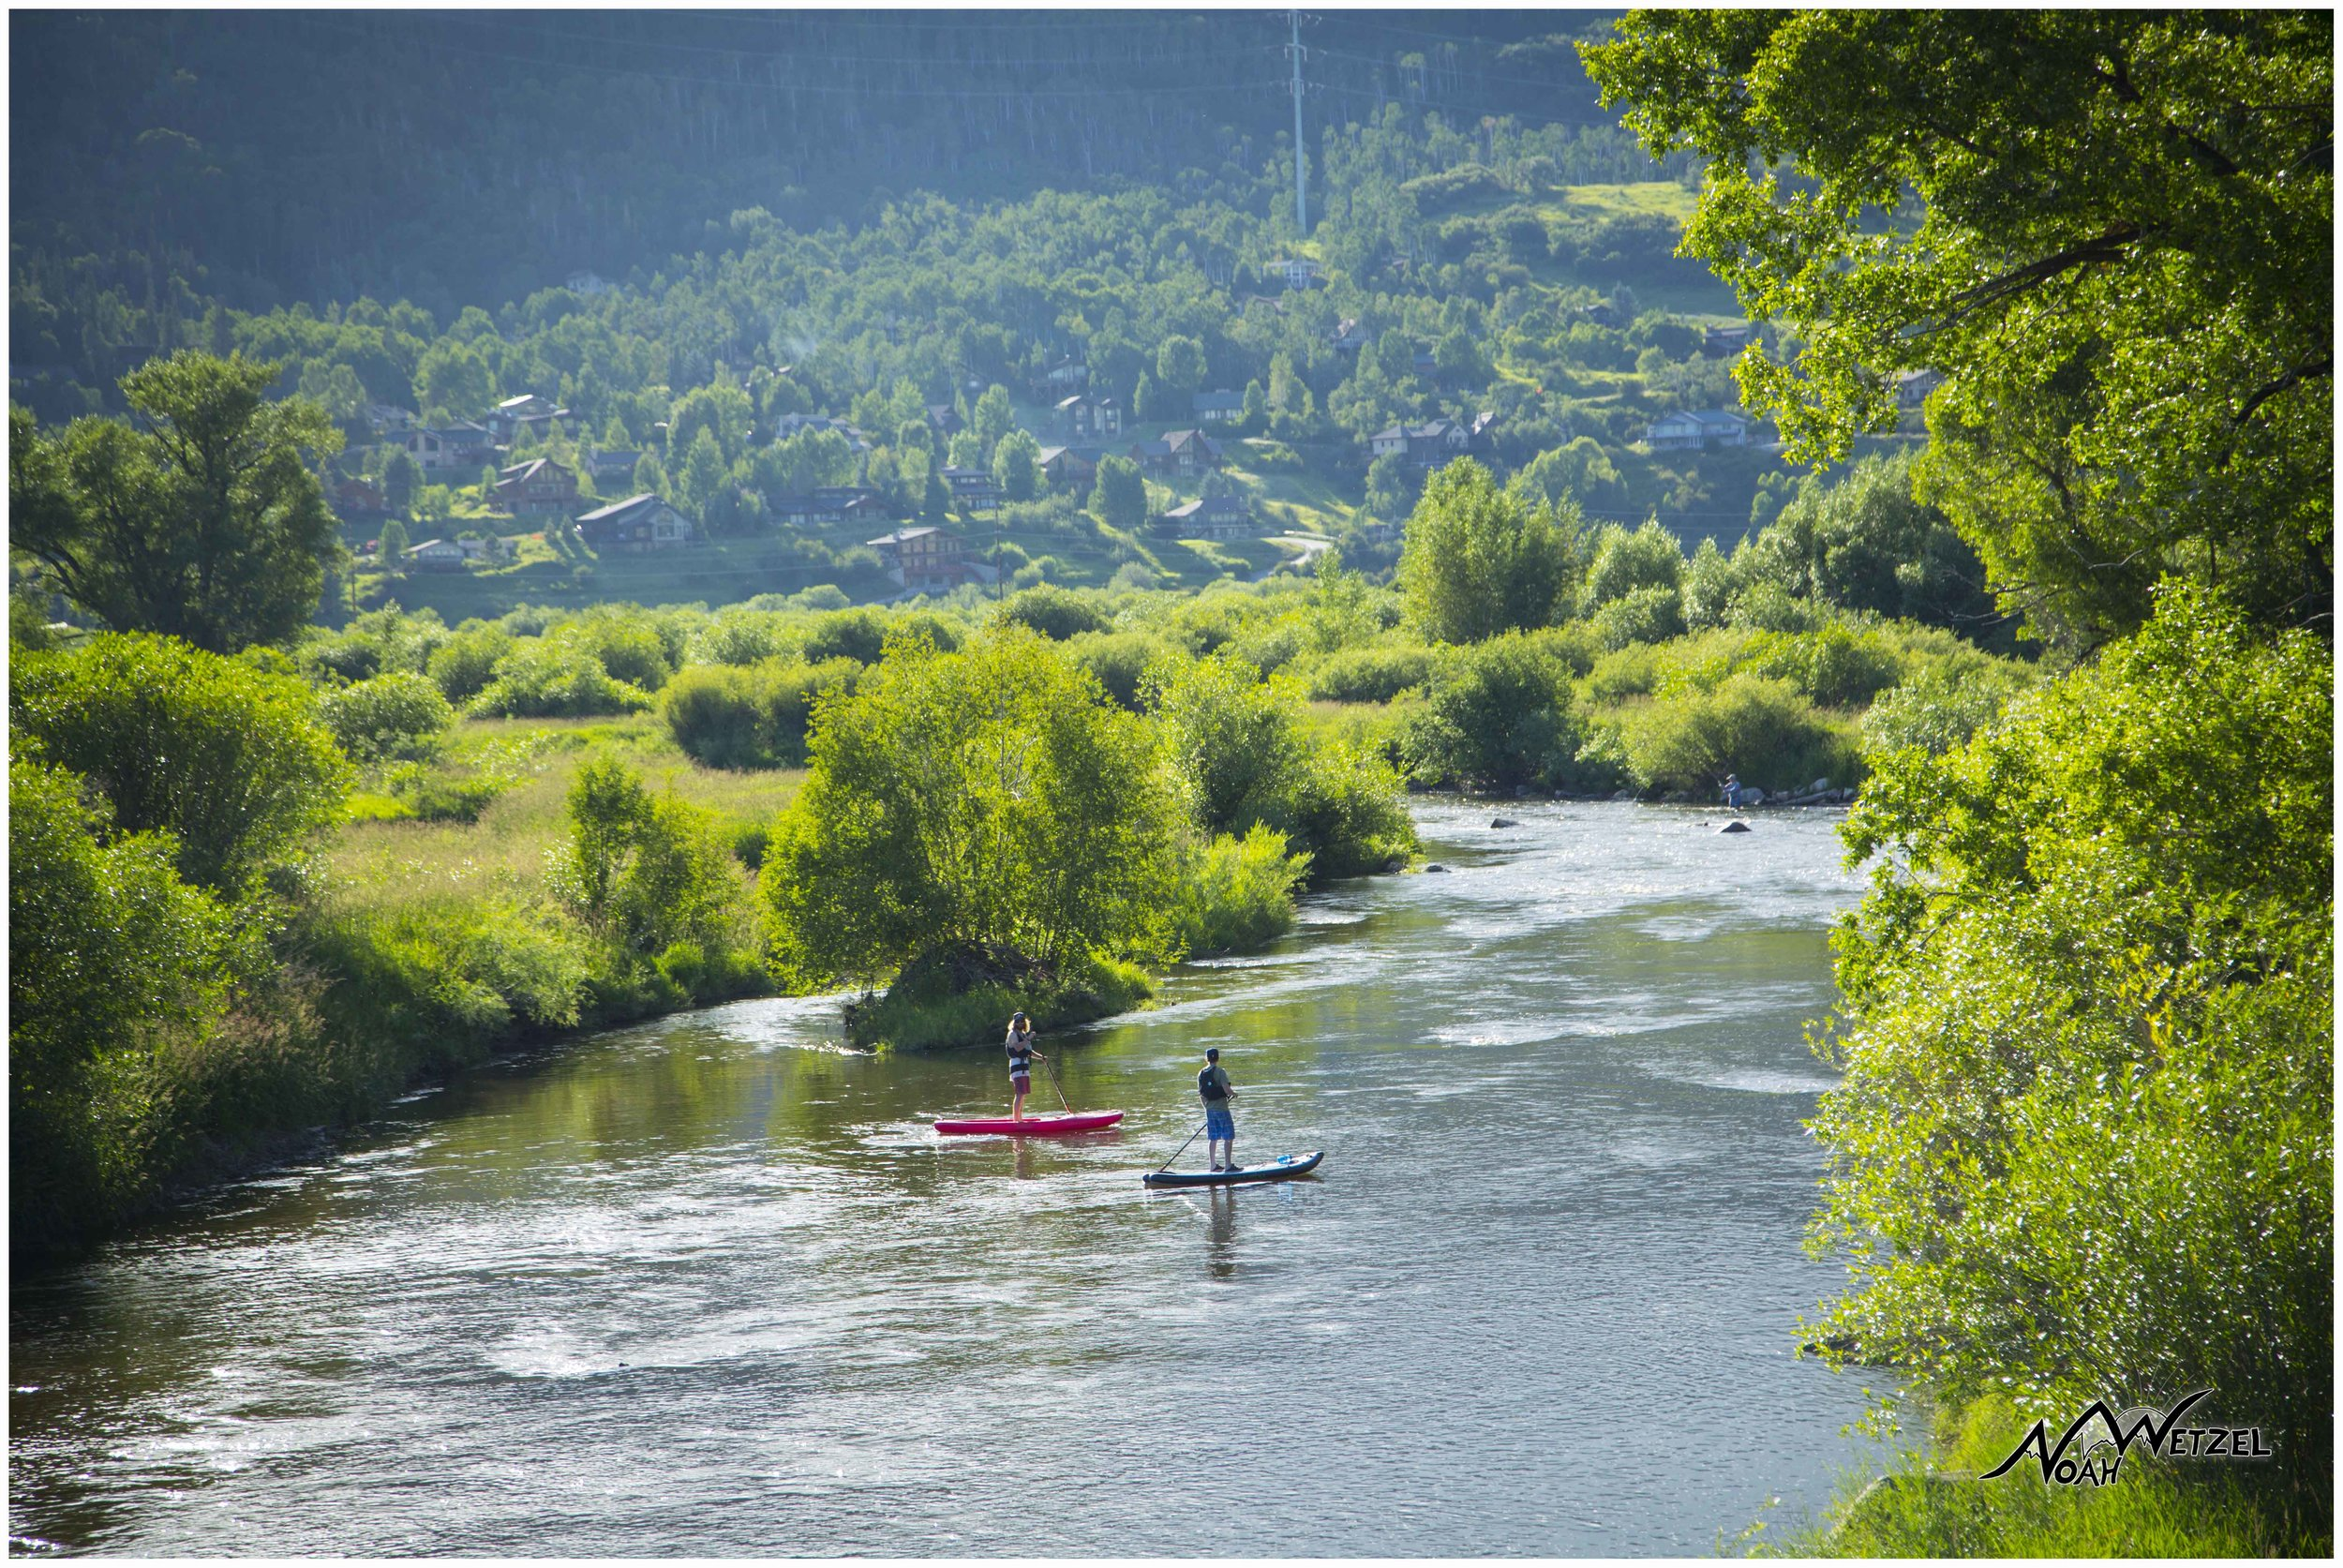 Mike Rundle and Marty Smith paddle-boarding the Yampa River. Colorado